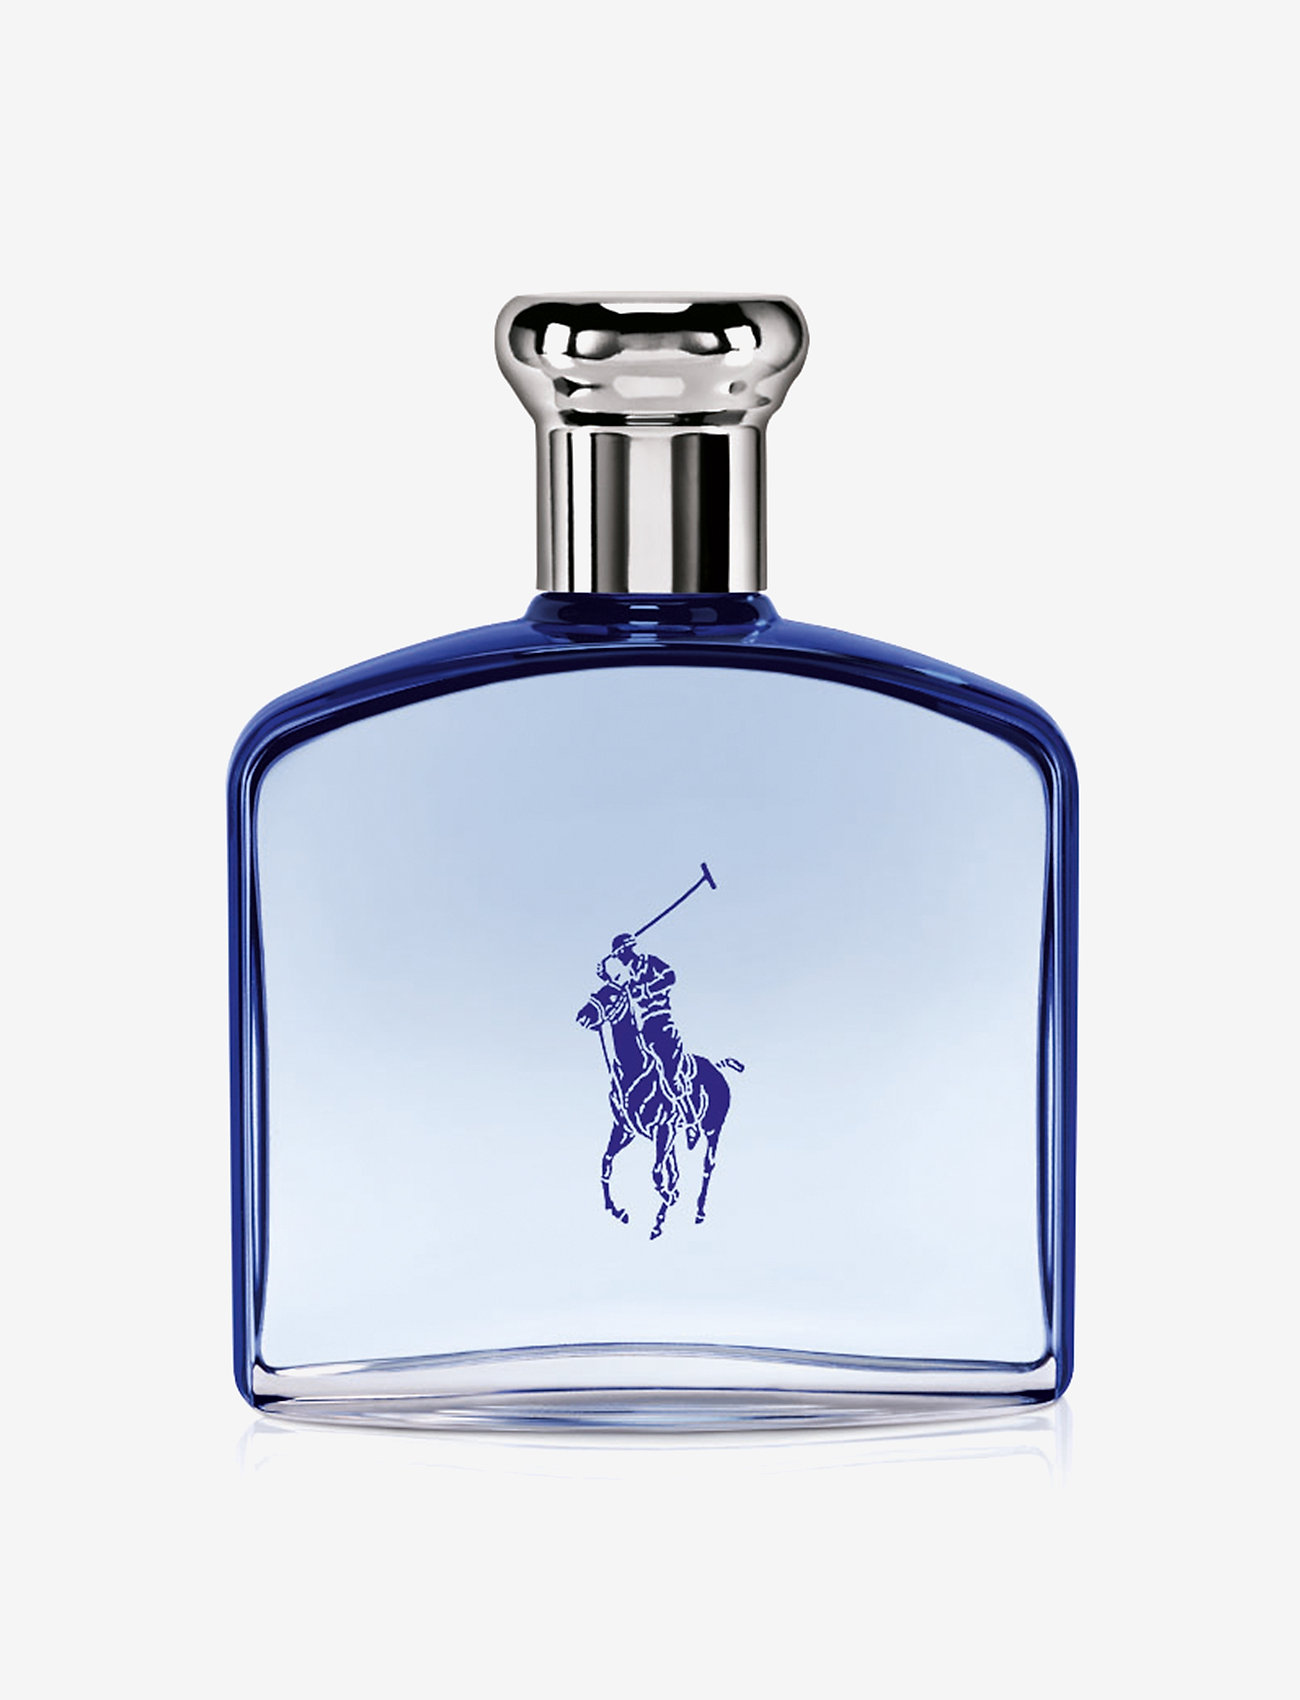 Ralph Lauren - Fragrance - Polo Blue Eau Fraiche 75 ml - eau de toilette - clear - 0